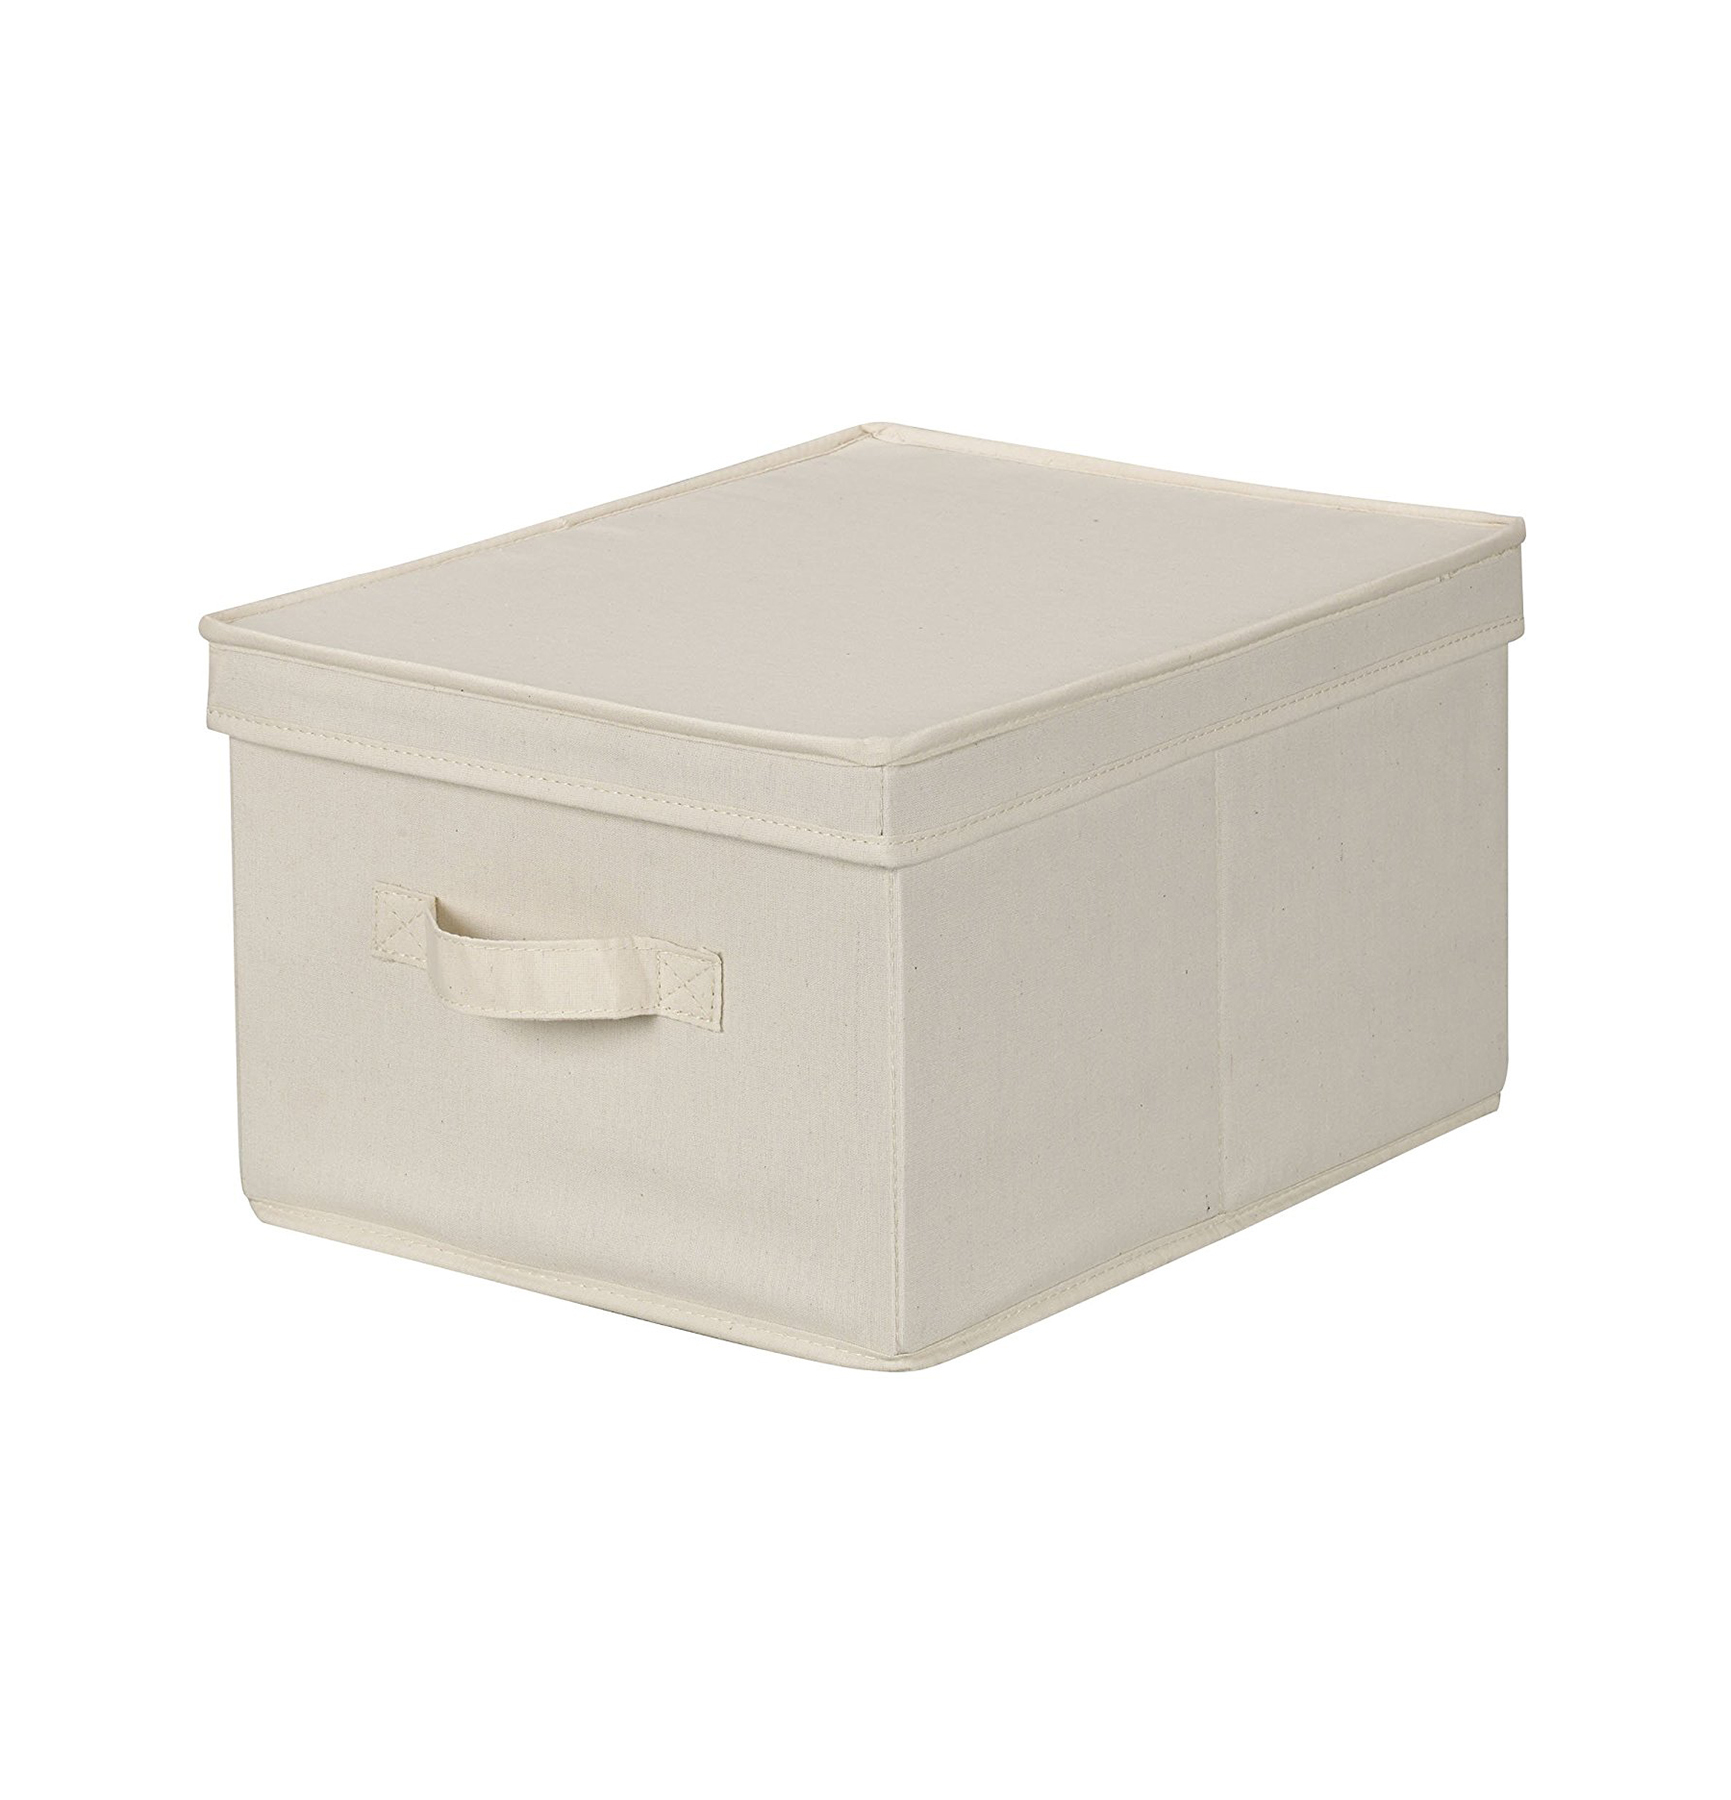 Household Essentials Storage Box with Lid and Handle